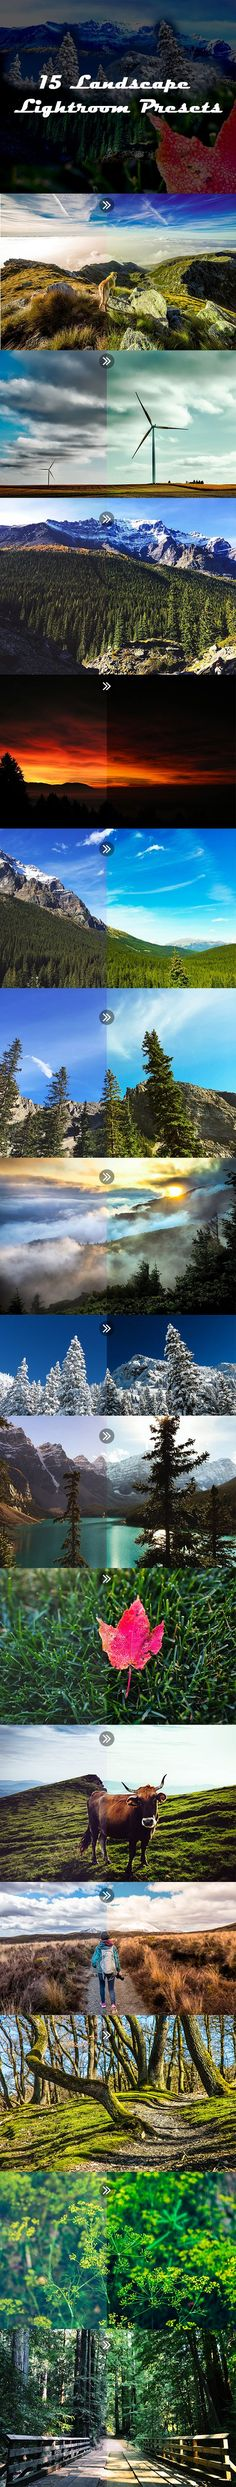 15 Landscape Lightroom Presets by email_templates 15 Landscape Lightroom Presets pack is very professional pack. Every preset work properly. No, destroy preset included in the pack